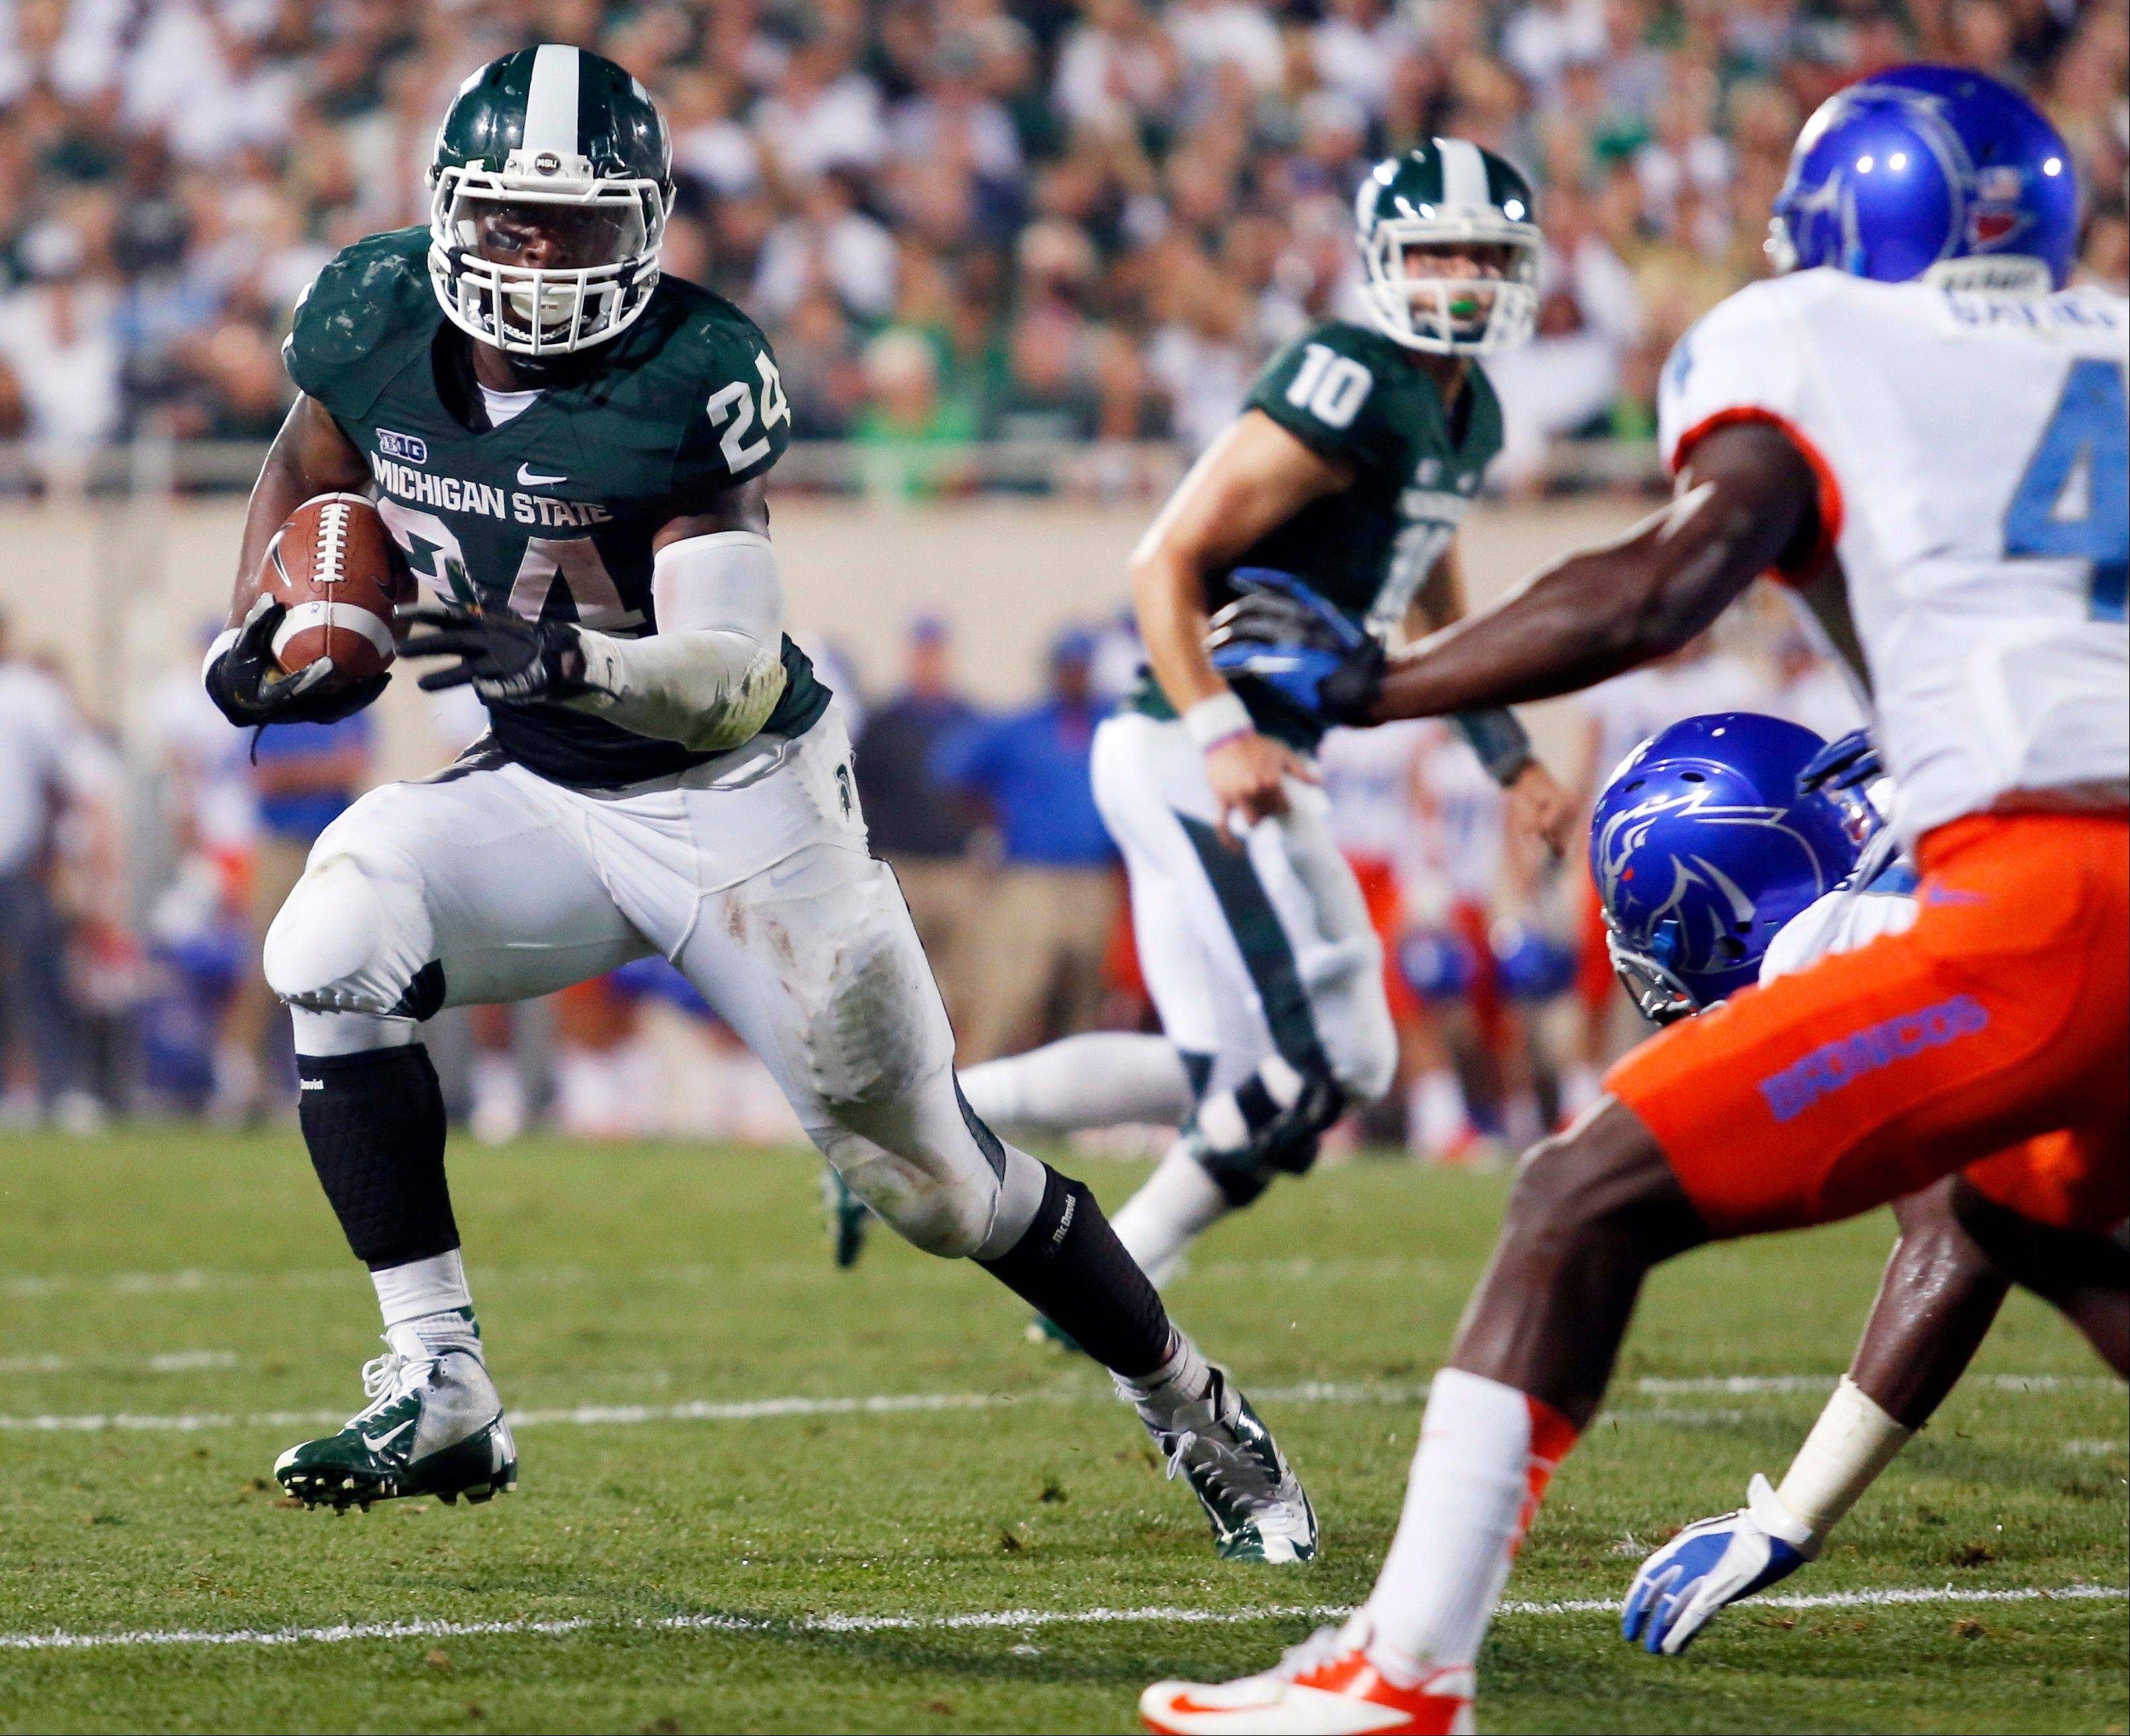 Michigan State�s Le�Veon Bell gets past Boise State�s Jerell Gavins to score the game-winning touchdown last Saturday in East Lansing, Mich.